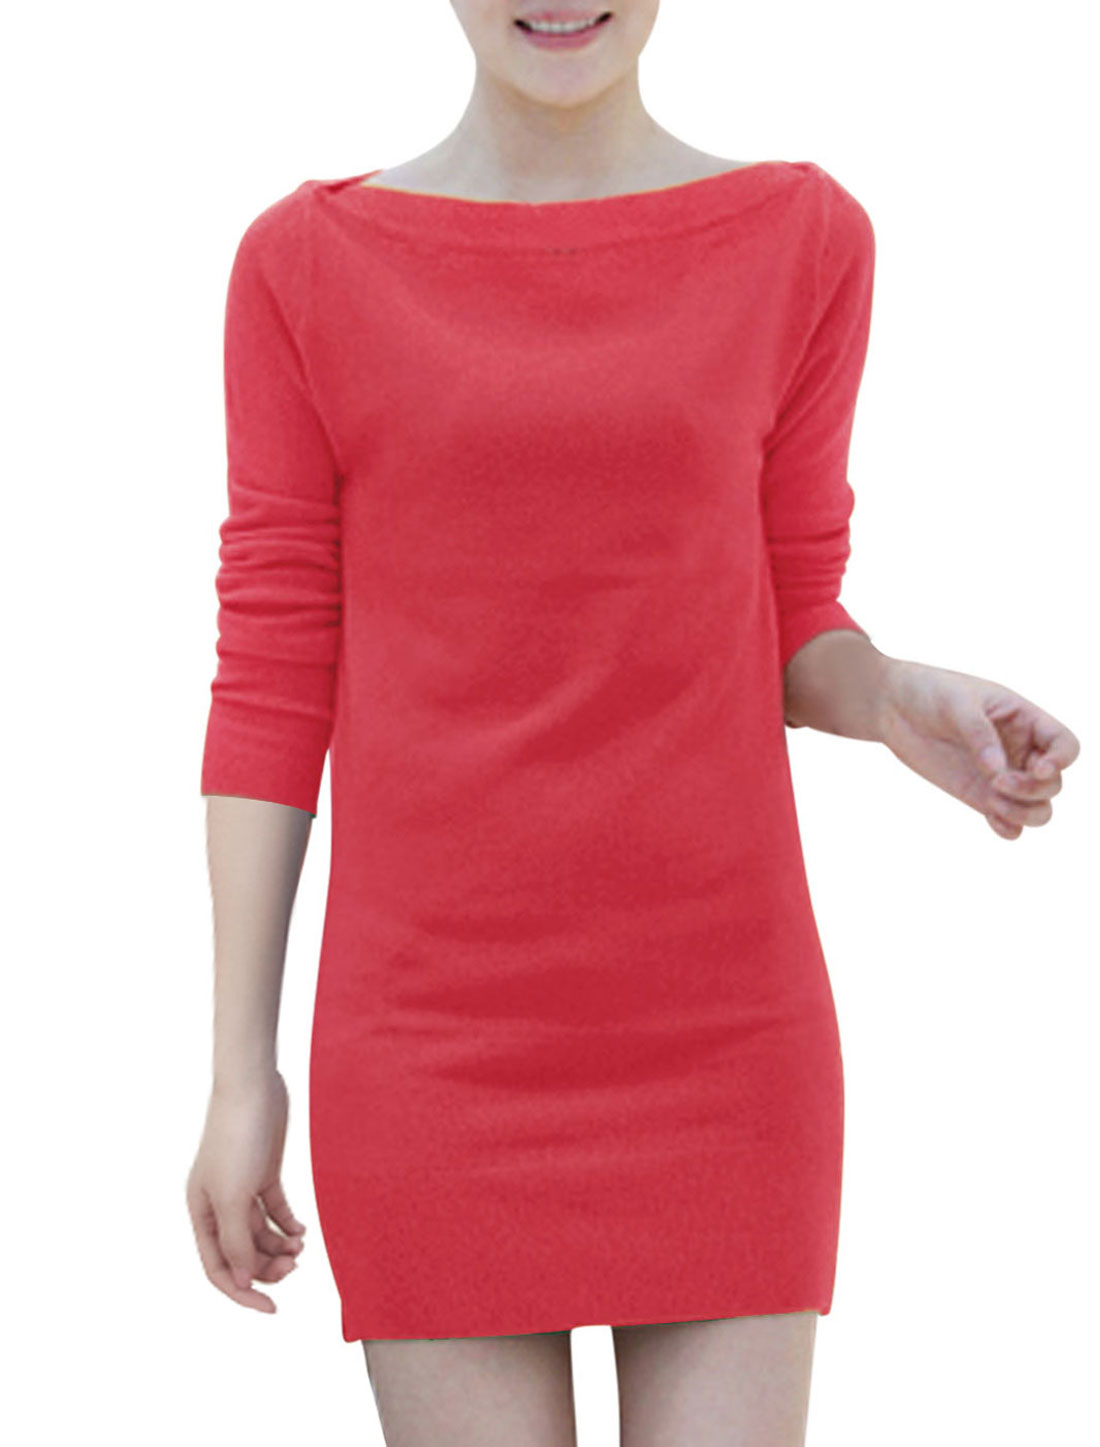 Ladies Long Sleeves Two Ways Wearing Fashion Knitted Dress Watermelon Red S